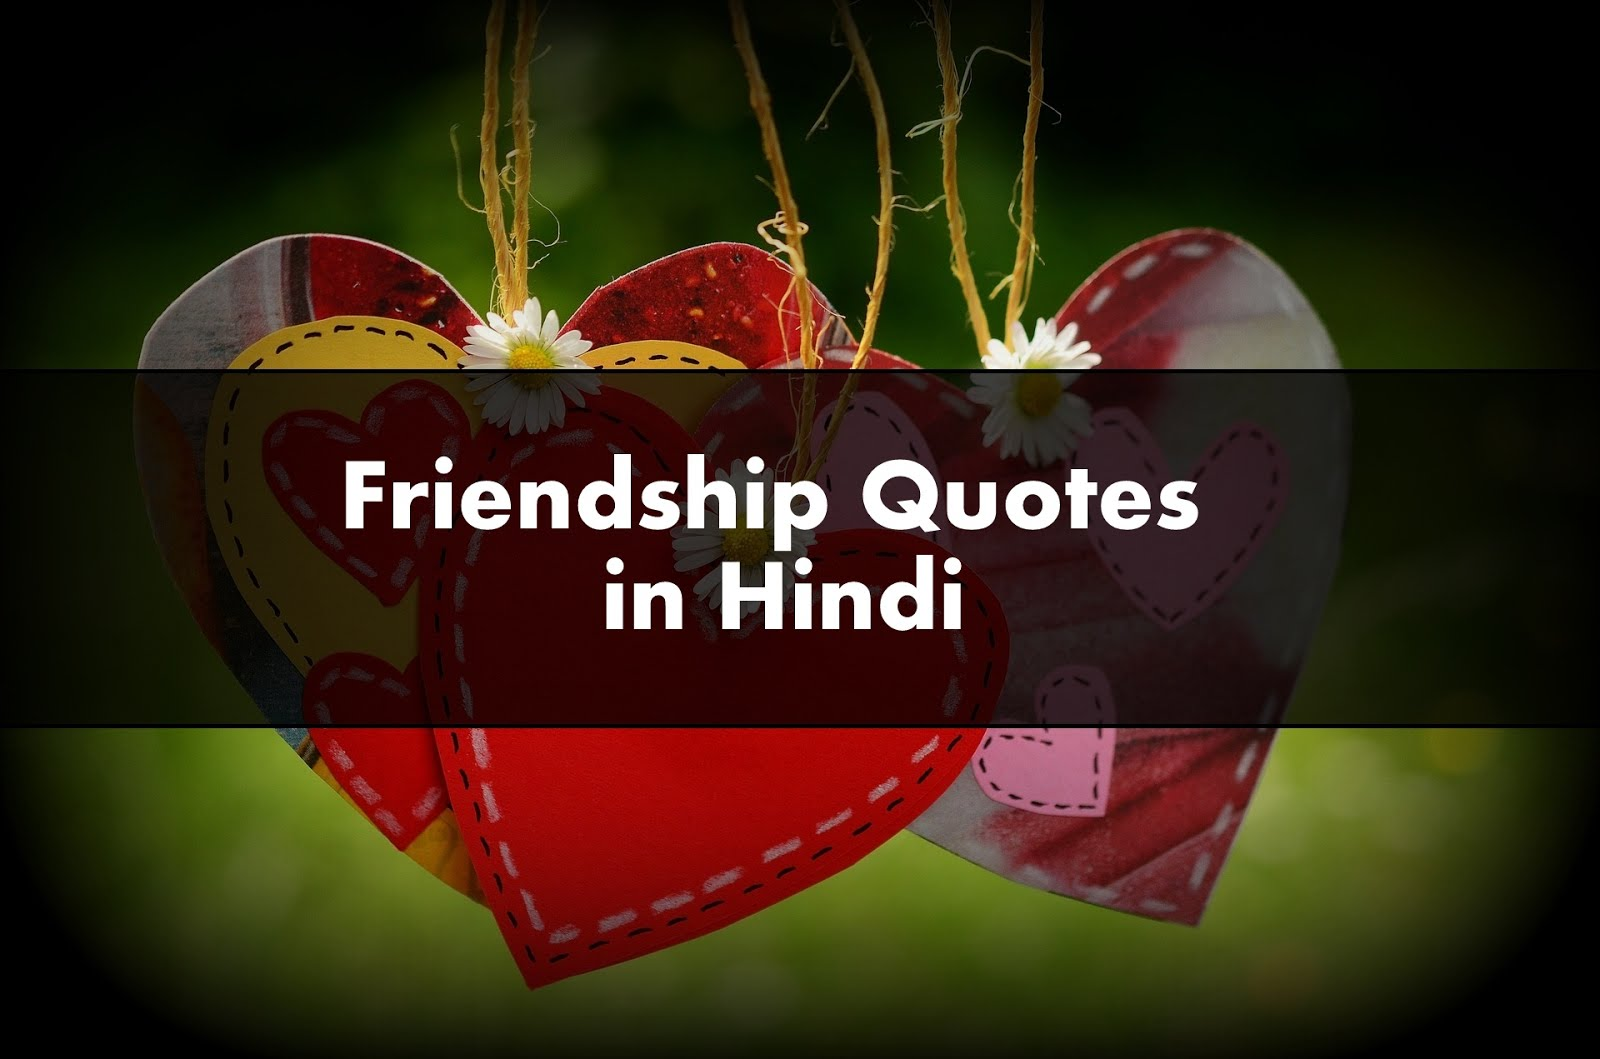 Friendship Quotes In Hindi Best Friend Shayari Dosti